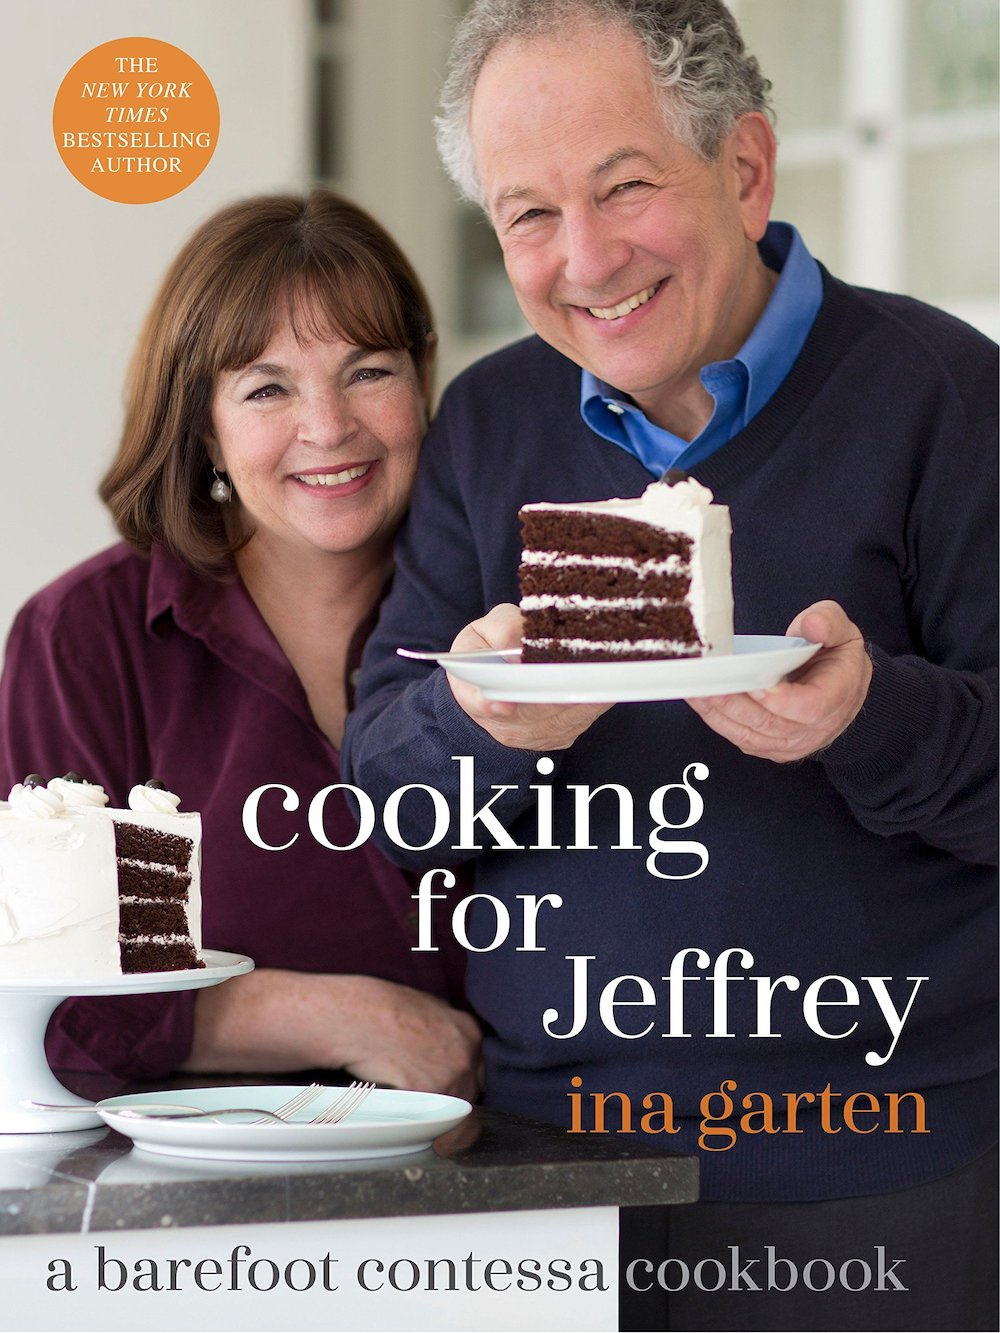 Cooking for Jeffrey by Ina Garten, a barefoot contessa cookbook, cook book ideas